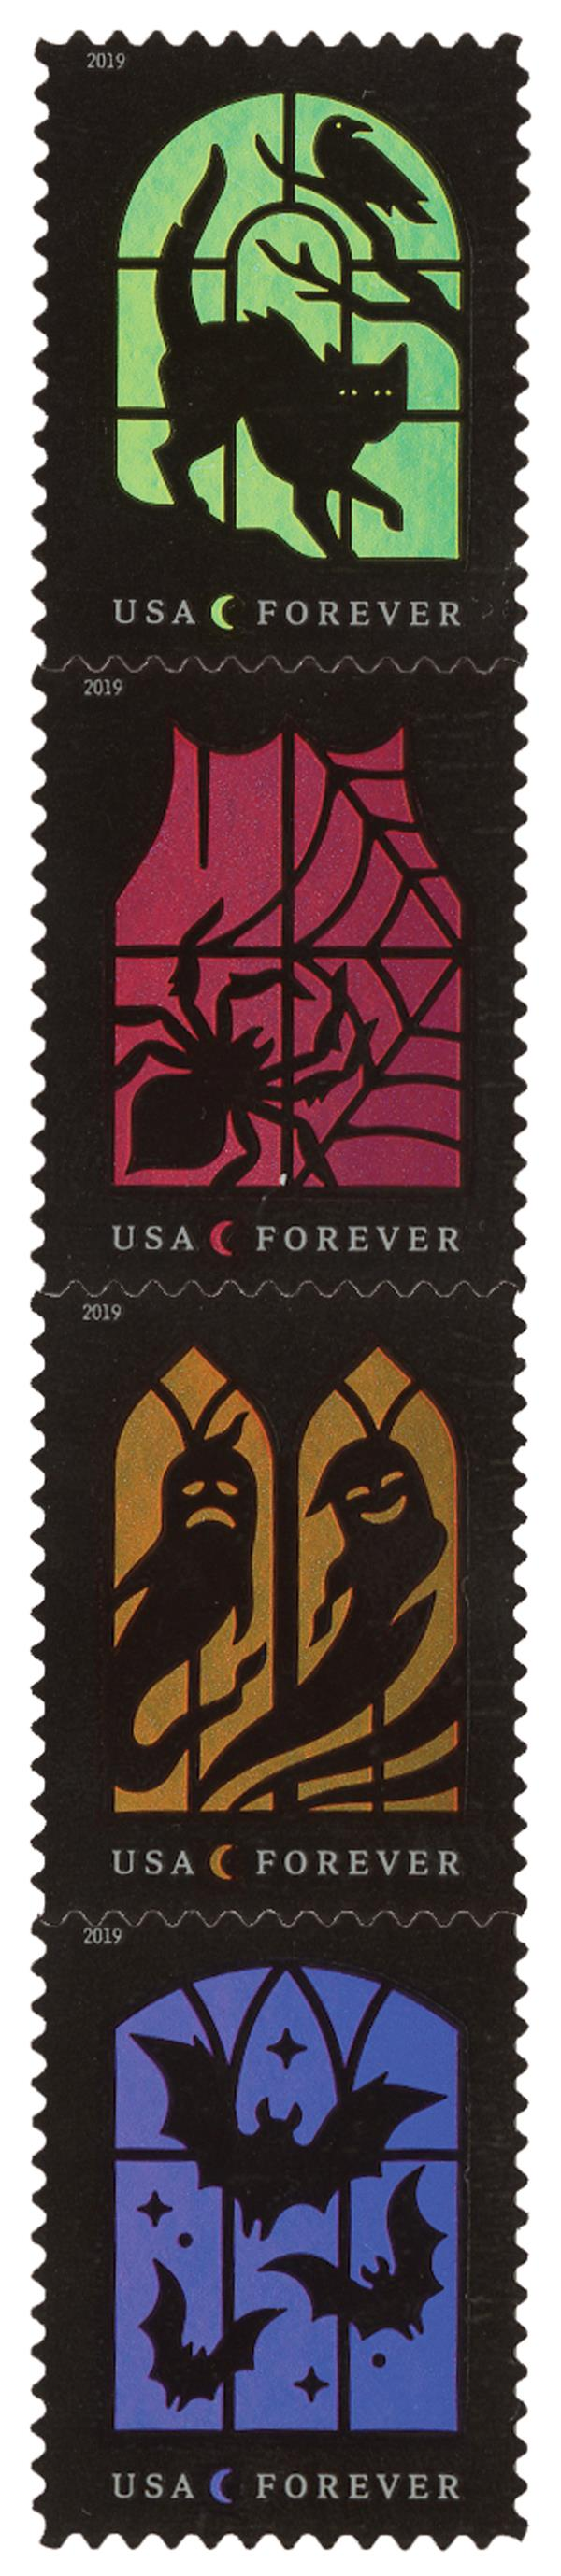 2019 First-Class Forever Stamp - Spooky Silhouettes